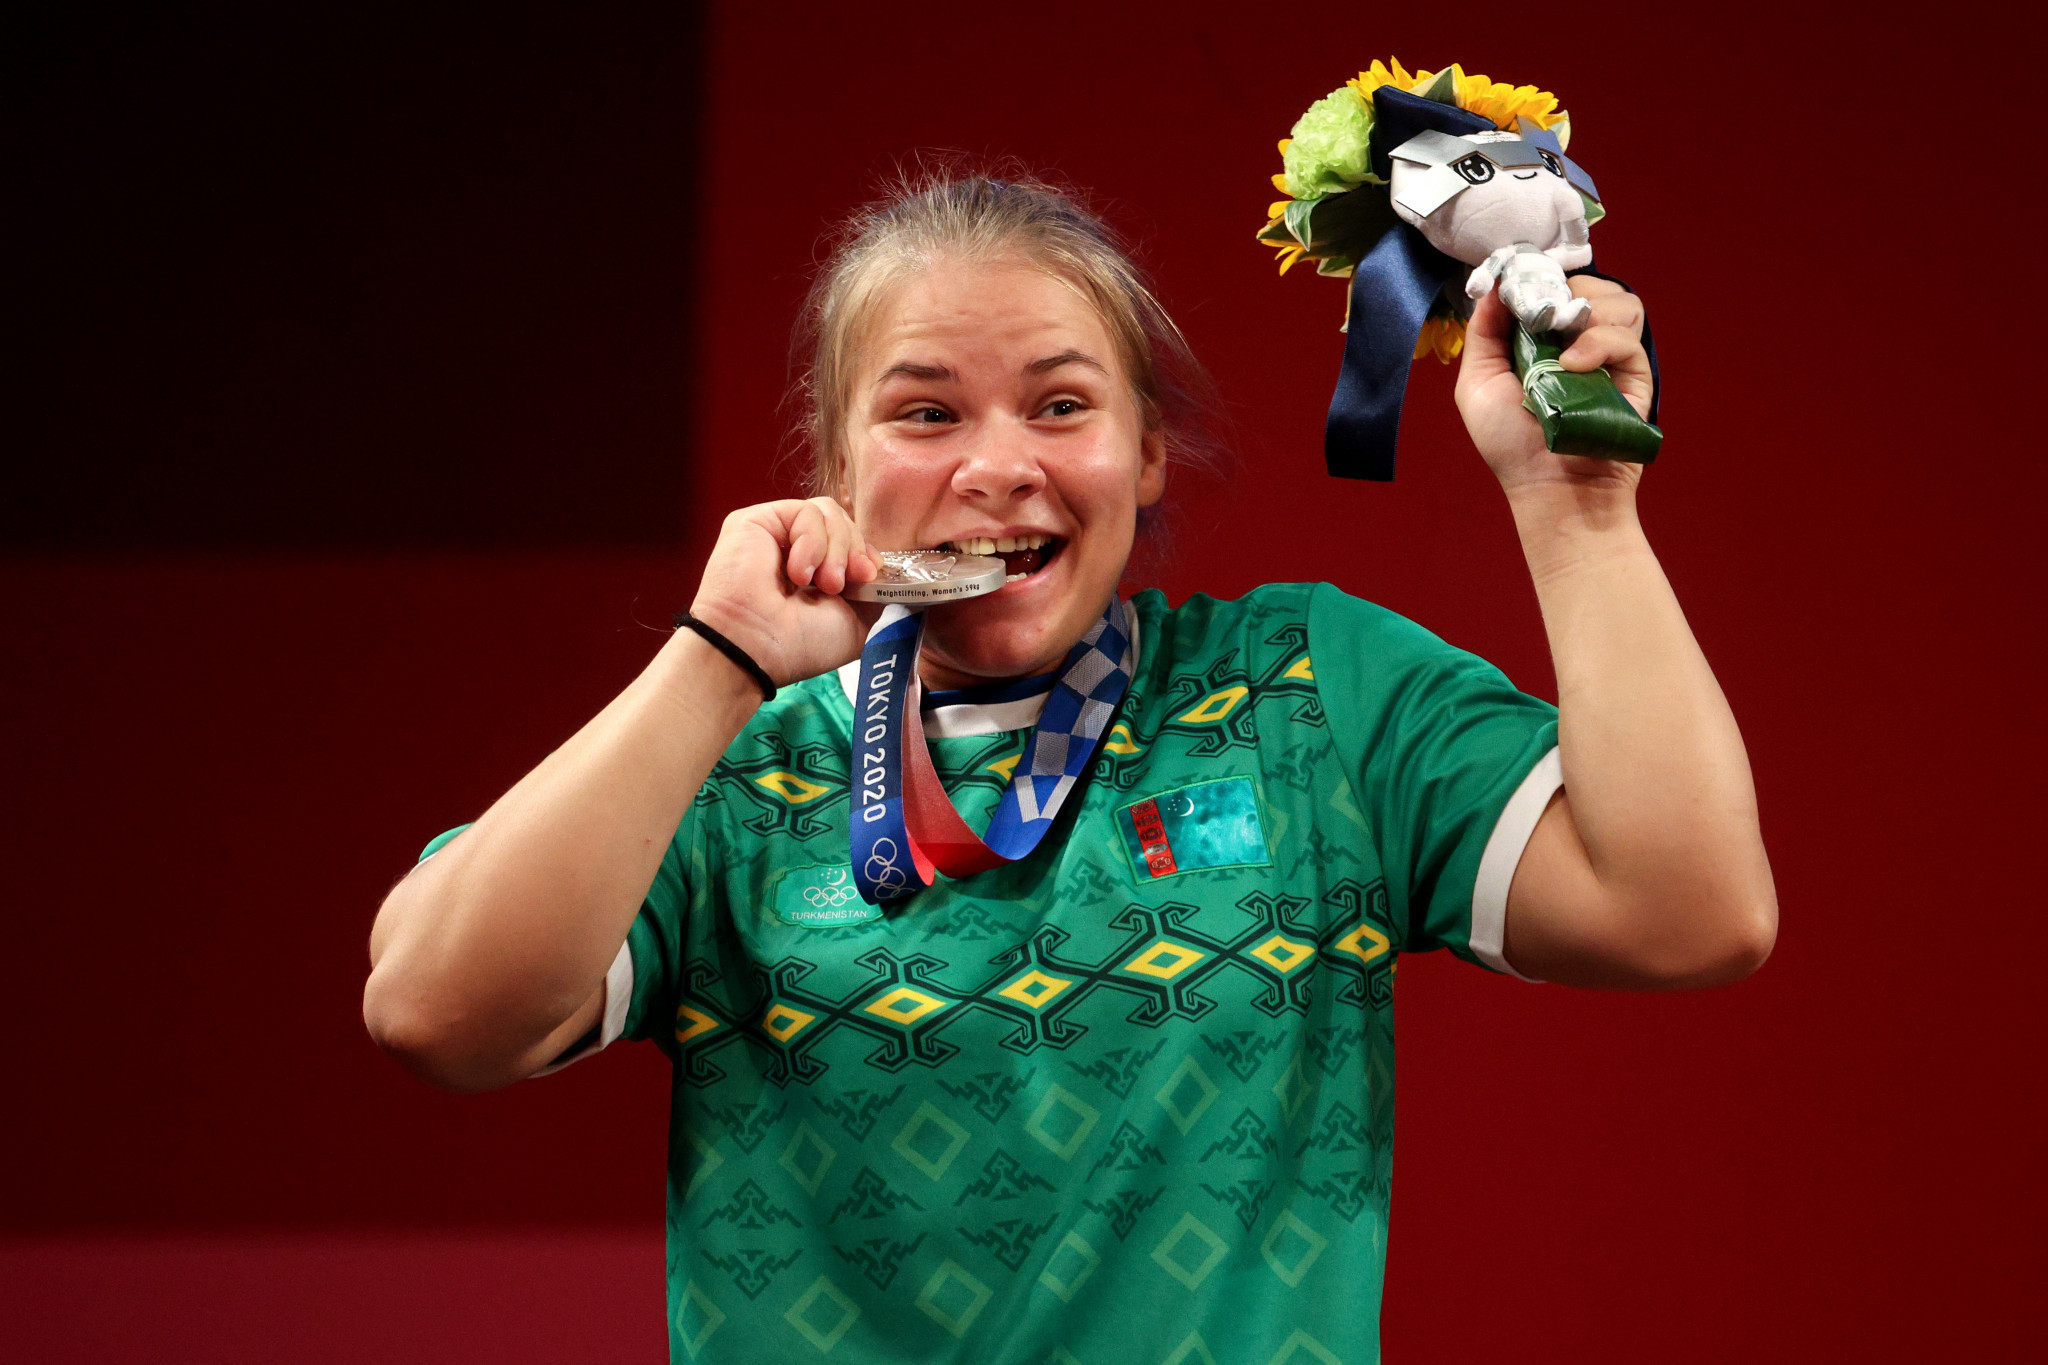 Polina Guryeva celebrates becoming the first Turkmenistan athlete to win an Olympic medal since its debut at Atlanta 1996 ©Getty Images